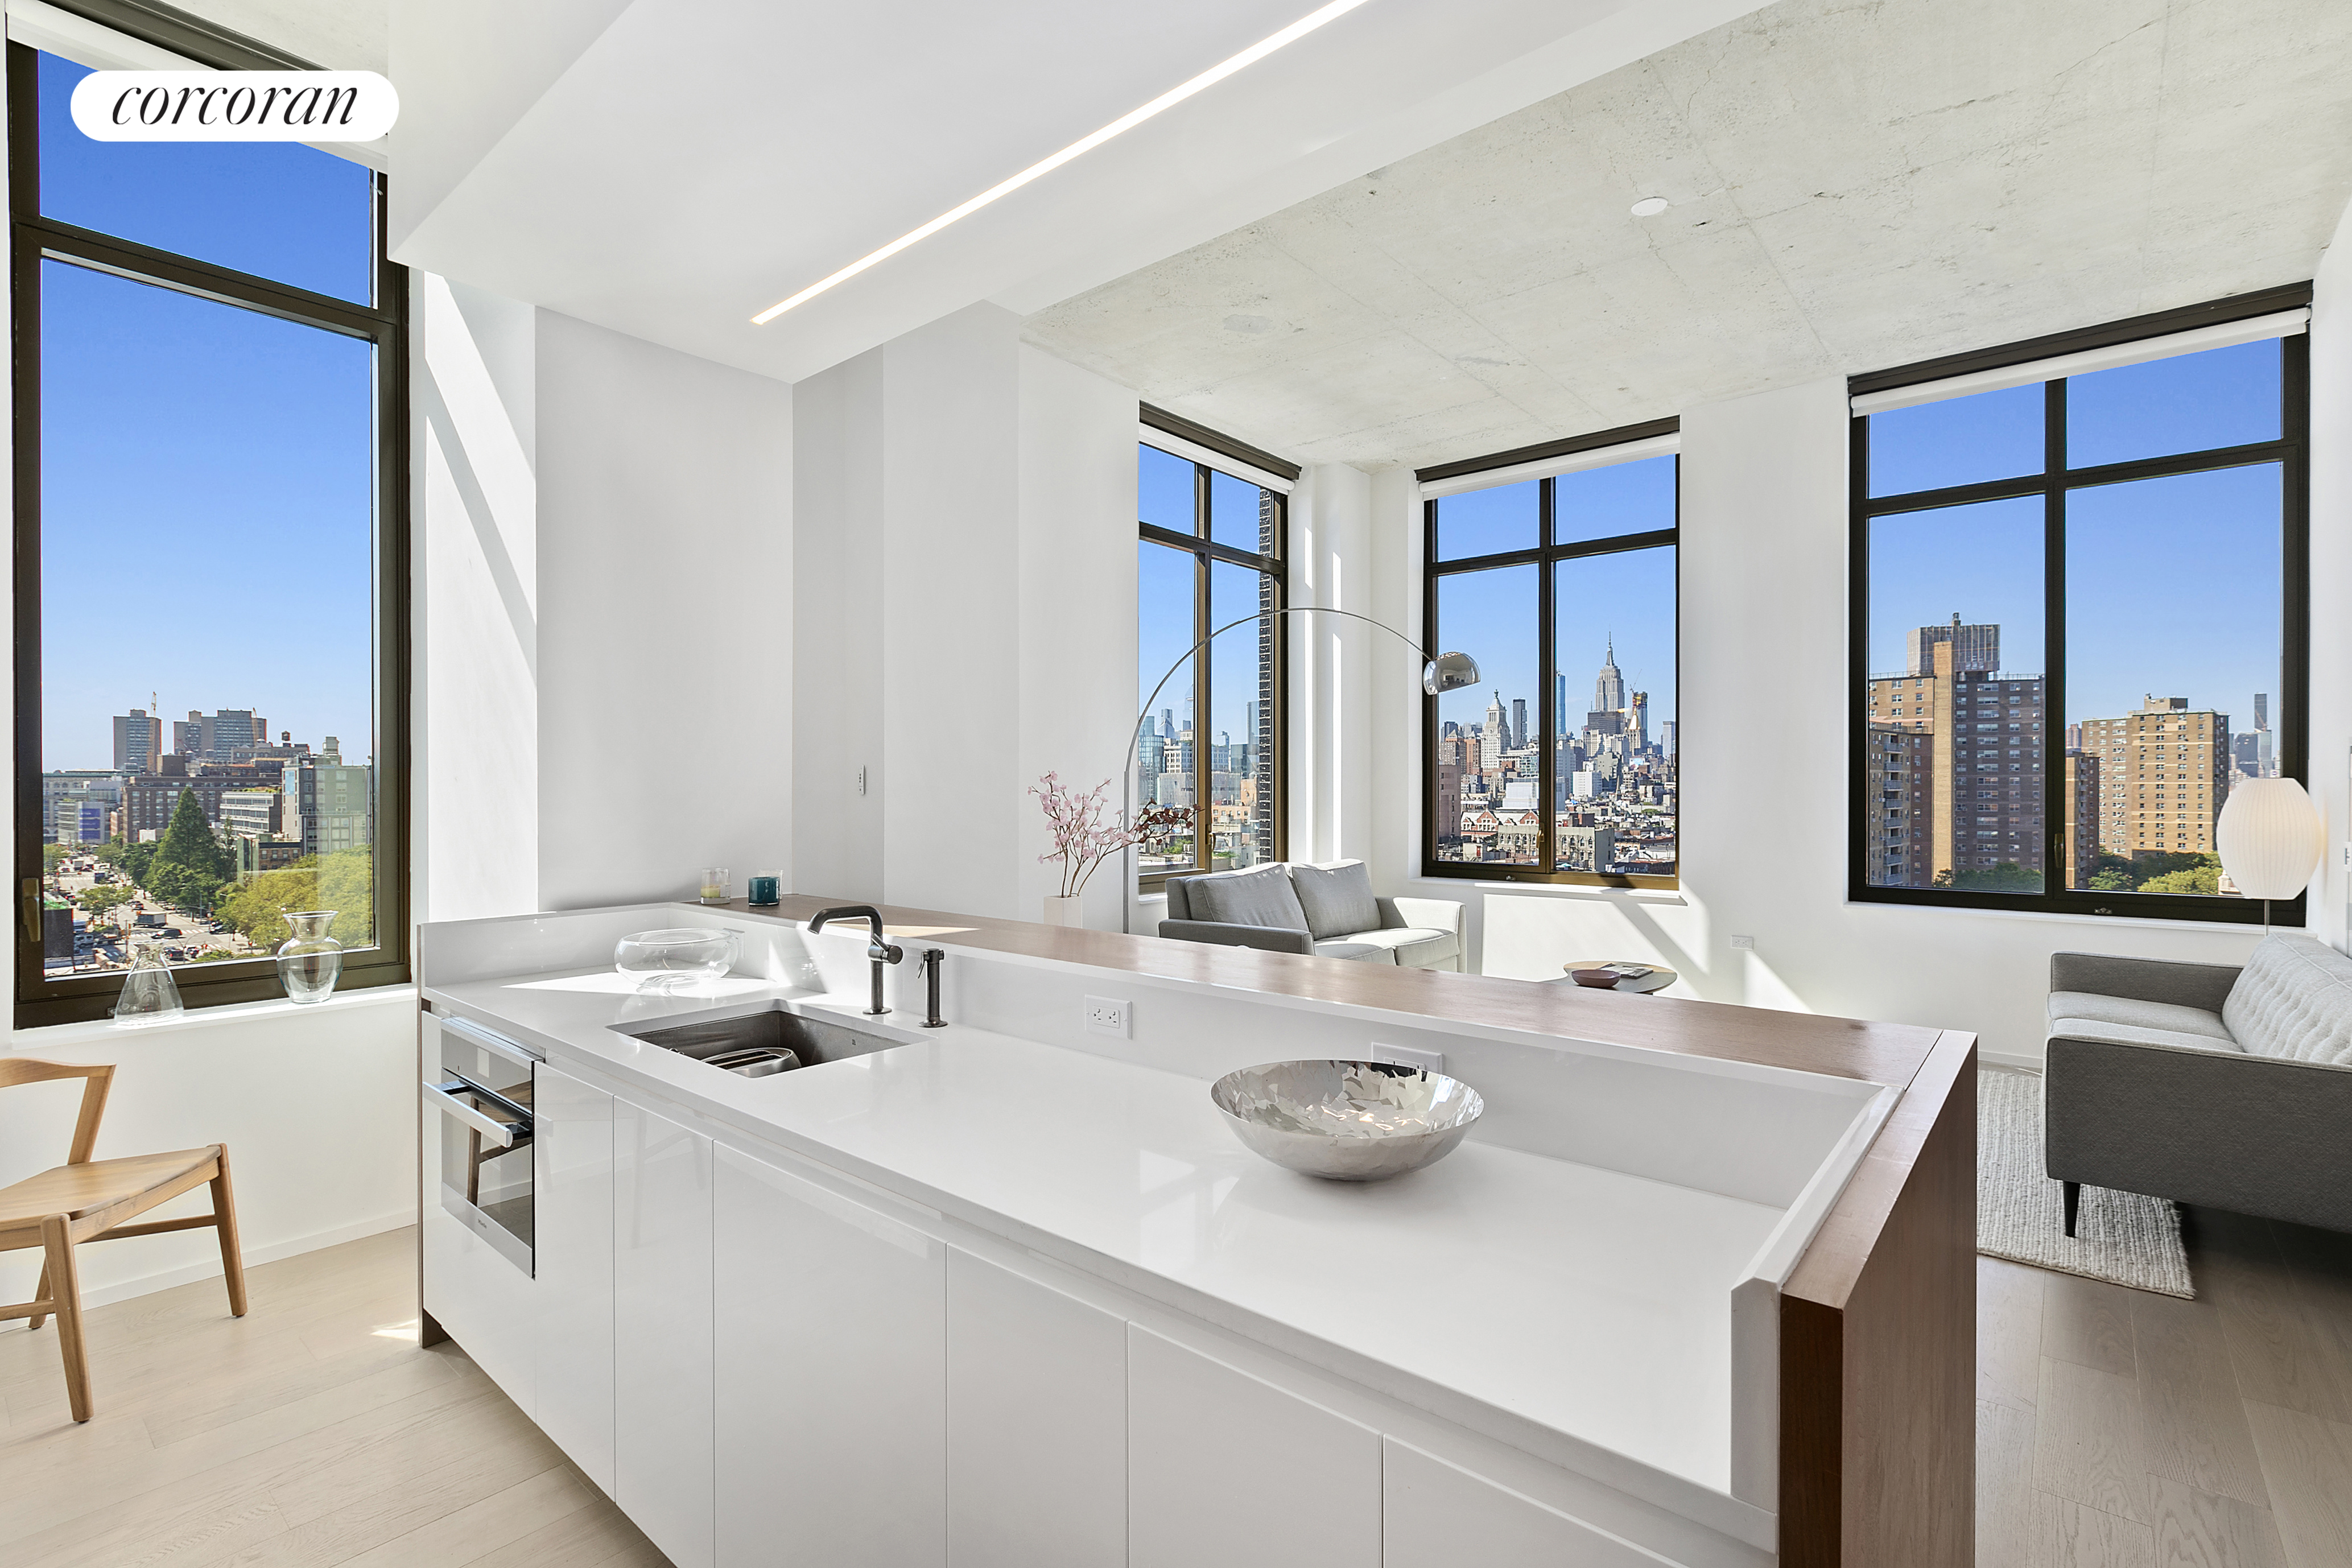 Stunning Skyline Views - BEST UNIT IN BUILDING - First Penthouse Resale at LES - premiere new development condominium - 196 Orchard Street!  This unique 1,409SF North\West corner designer penthouse with two split bedrooms, two and a half bathrooms expertly blends the best of Downtown style with polished modern luxury.  Designed by Incorporated Architecture & Design, Penthouse E features fabulous 12ft exposed concrete ceilings, gorgeous wide-plank white oak floors, and massive industrial style windows that showcase truly breathtaking views of the Manhattan skyline from every room. The stylish and functional custom open kitchen with built-in Miele appliances includes onyx lacquer cabinetry, polished marble backsplash, quartz countertop with cabinet lighting, and a kitchen island with wine refrigerator. The master bathroom boasts Blue de Savoie marble floors, marble shower and bathtub, Waterworks fixtures and white lacquer vanity with polished quartz countertop. This stylish penthouse home is completed by an LG stacked washer and dryer and a gorgeous powder room with Eramosa marble floor.   196 Orchard street is a chic and stylish full-service condominium perfectly located where the East Village and Lower East Side meet. The building has a 24 hour attended lobby, truly magnificent 4,300SF residents' rooftop lounge with outdoor kitchens and spectacular city views, and a bicycle room. Residents also receive a discount at the state-of-the-art two-story, 30,000-square-foot Equinox Fitness Center and Spa with a private entrance that occupies the second and third floors.   The monthly real estate taxes listed are the actual taxes paid by the current owner. Please consult your real estate attorney for information about tax rates for different forms of ownership and uses (primary vs. secondary/investment).